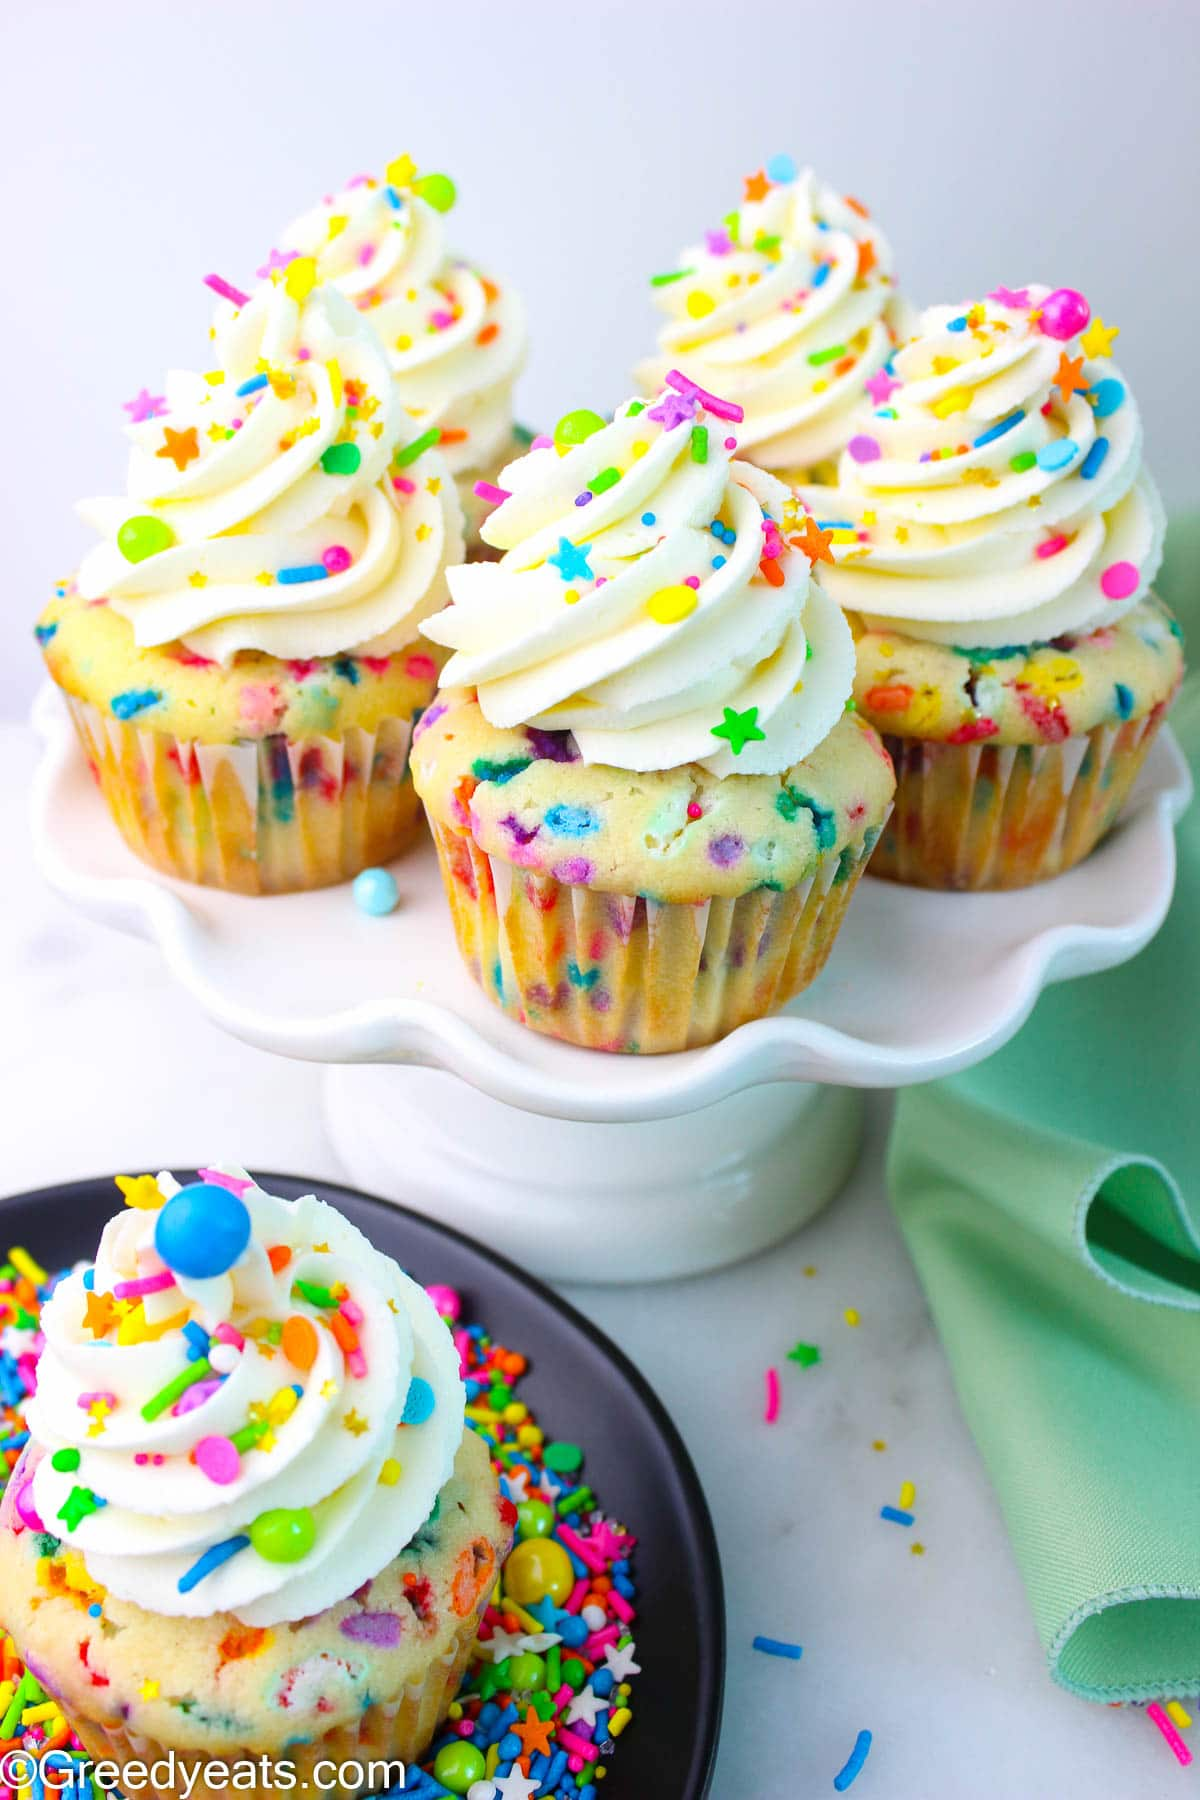 Funfetti Cupcakes Recipe made with sour cream, topped with Vanilla Buttercream kept on cake stand.